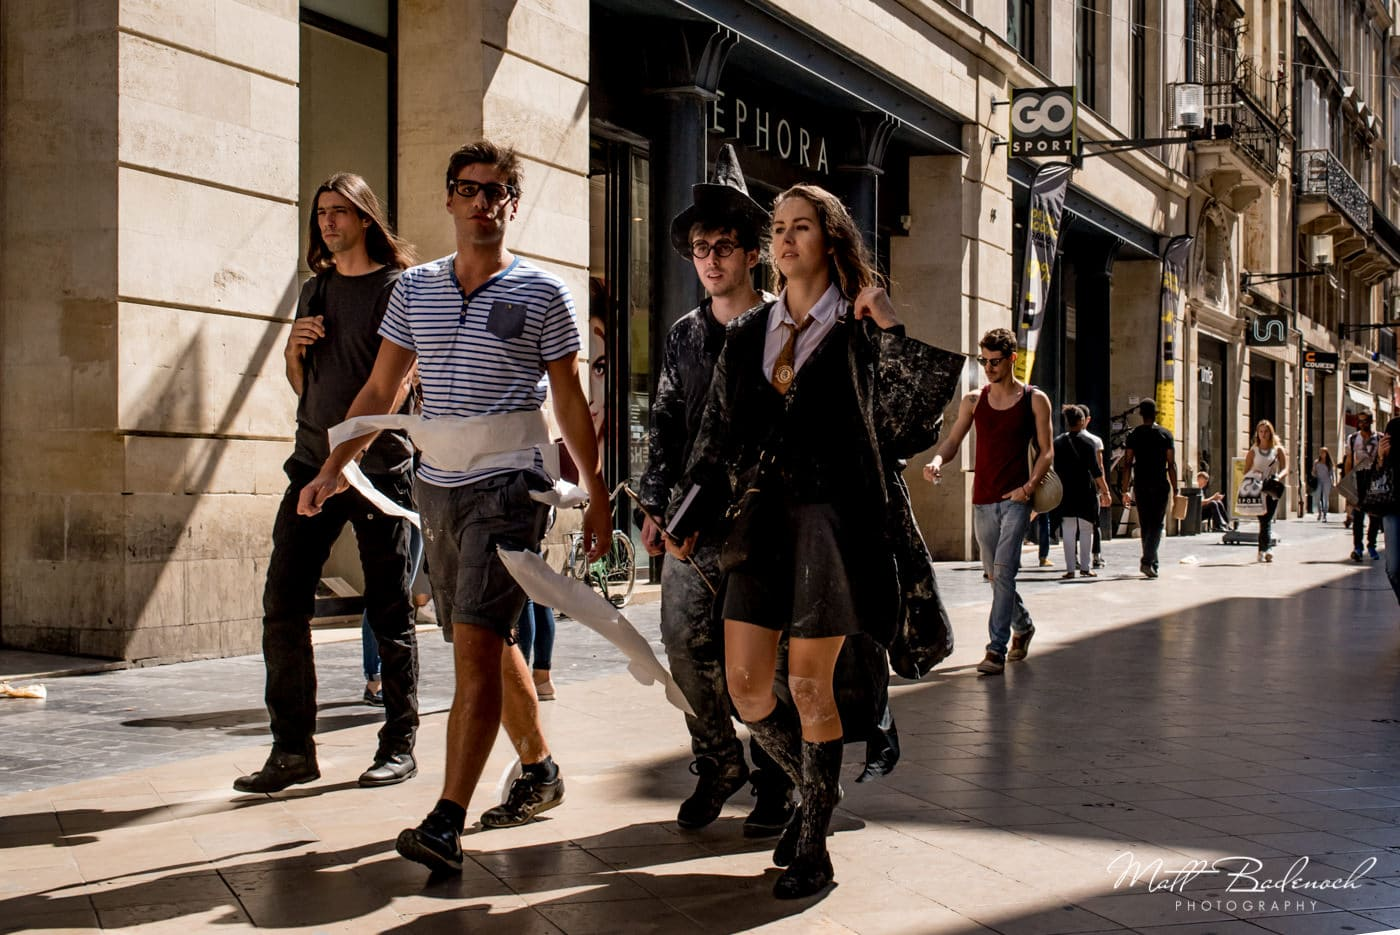 harry potter costumes in public | bordeaux street photography